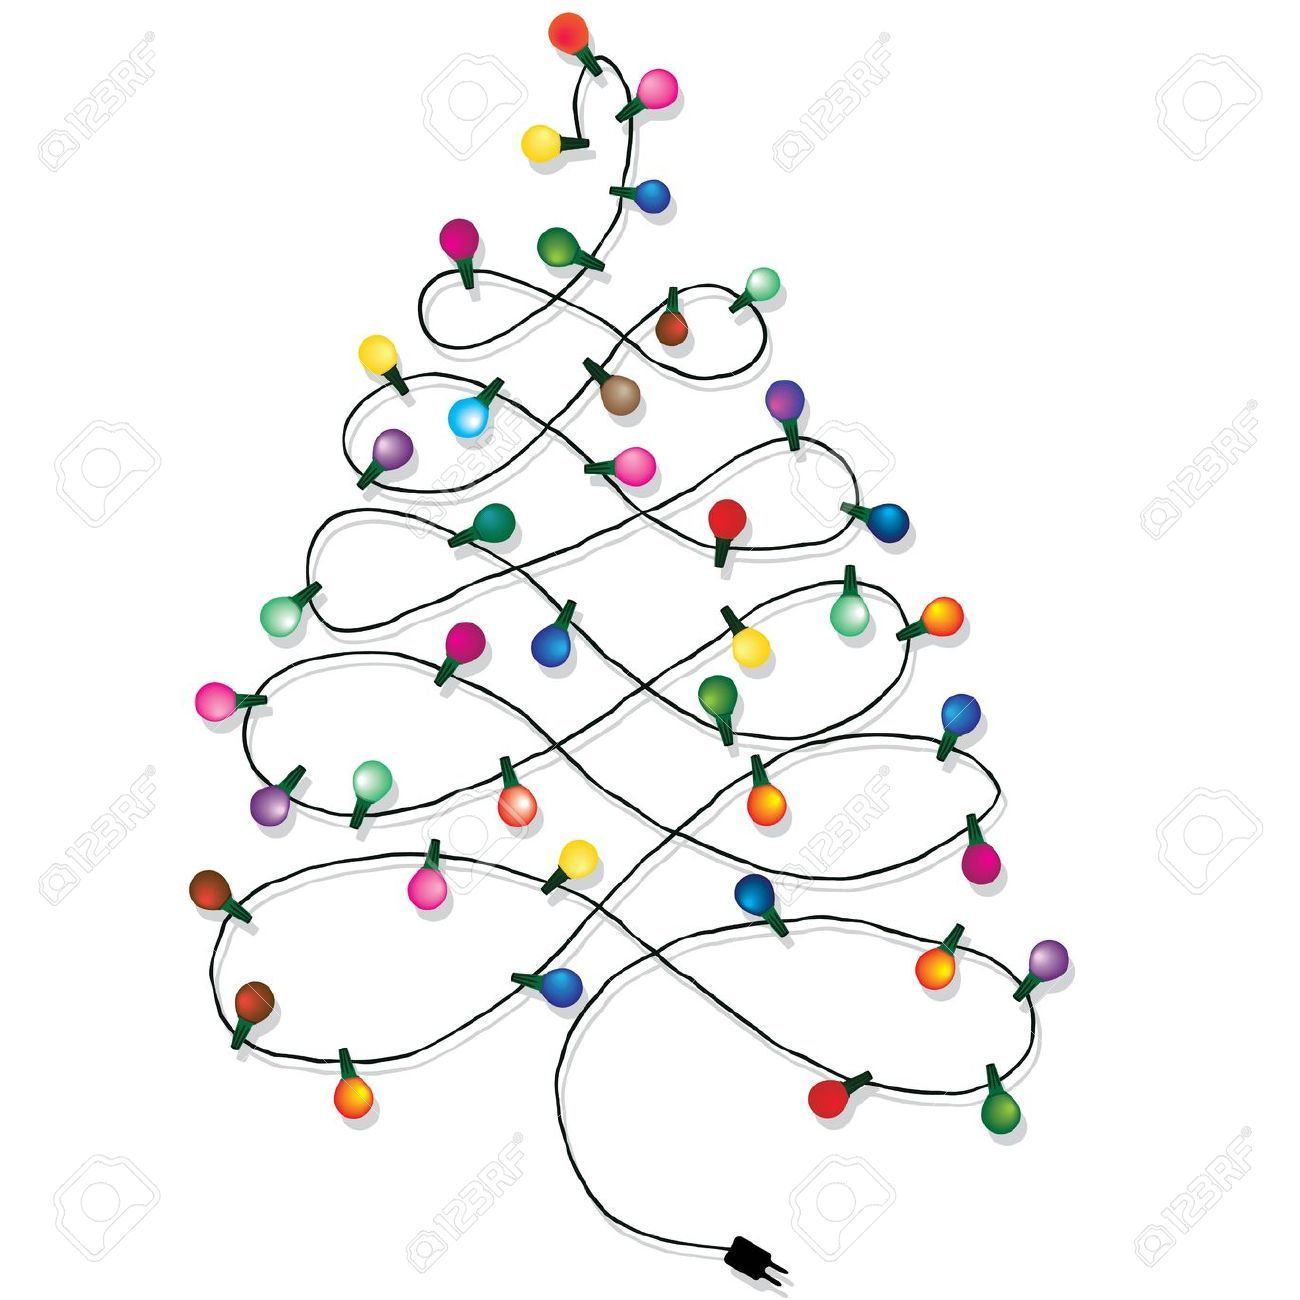 How To String Lights On A Christmas Tree Unique Christmas Tree Lighting Background  Google Search  Christmas Decorating Design